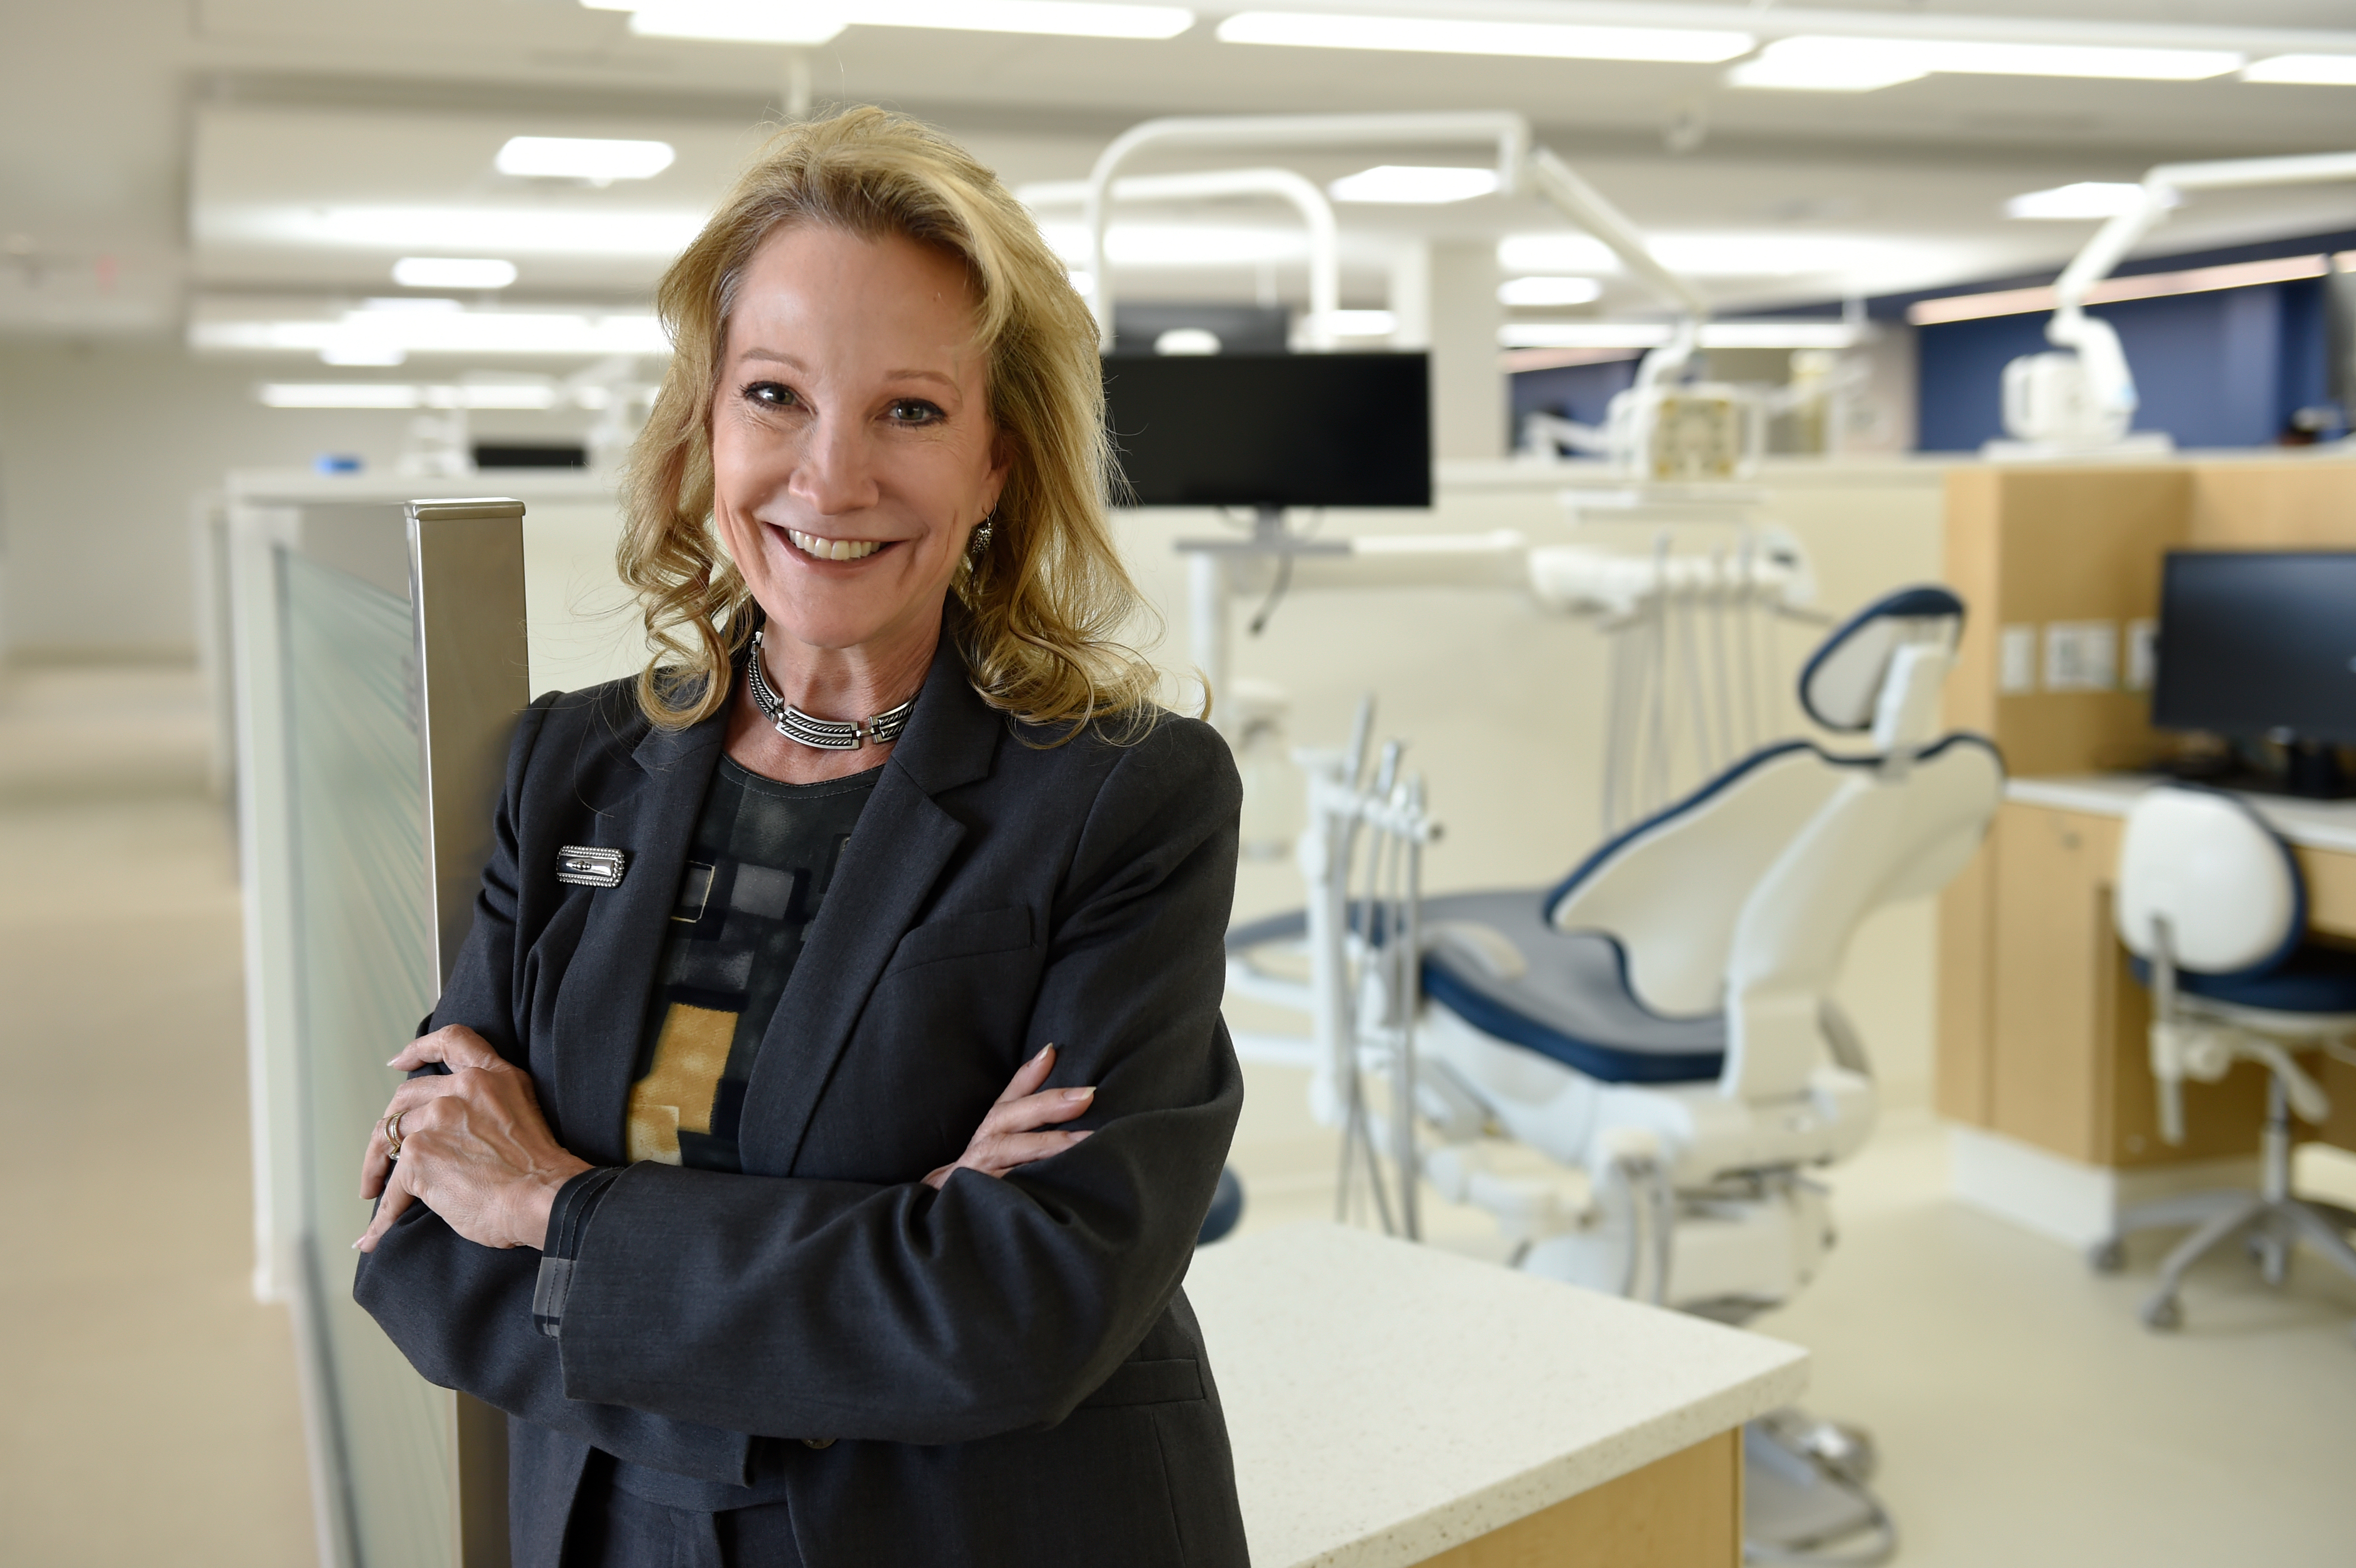 Dr. Sharon Gordon, dean of the UConn School of Dental Medicine, in the newly renovated Dental Care Clinic at UConn Health. (Cloe Poisson, Copyright © 2019. Hartford Courant. Used with permission.)